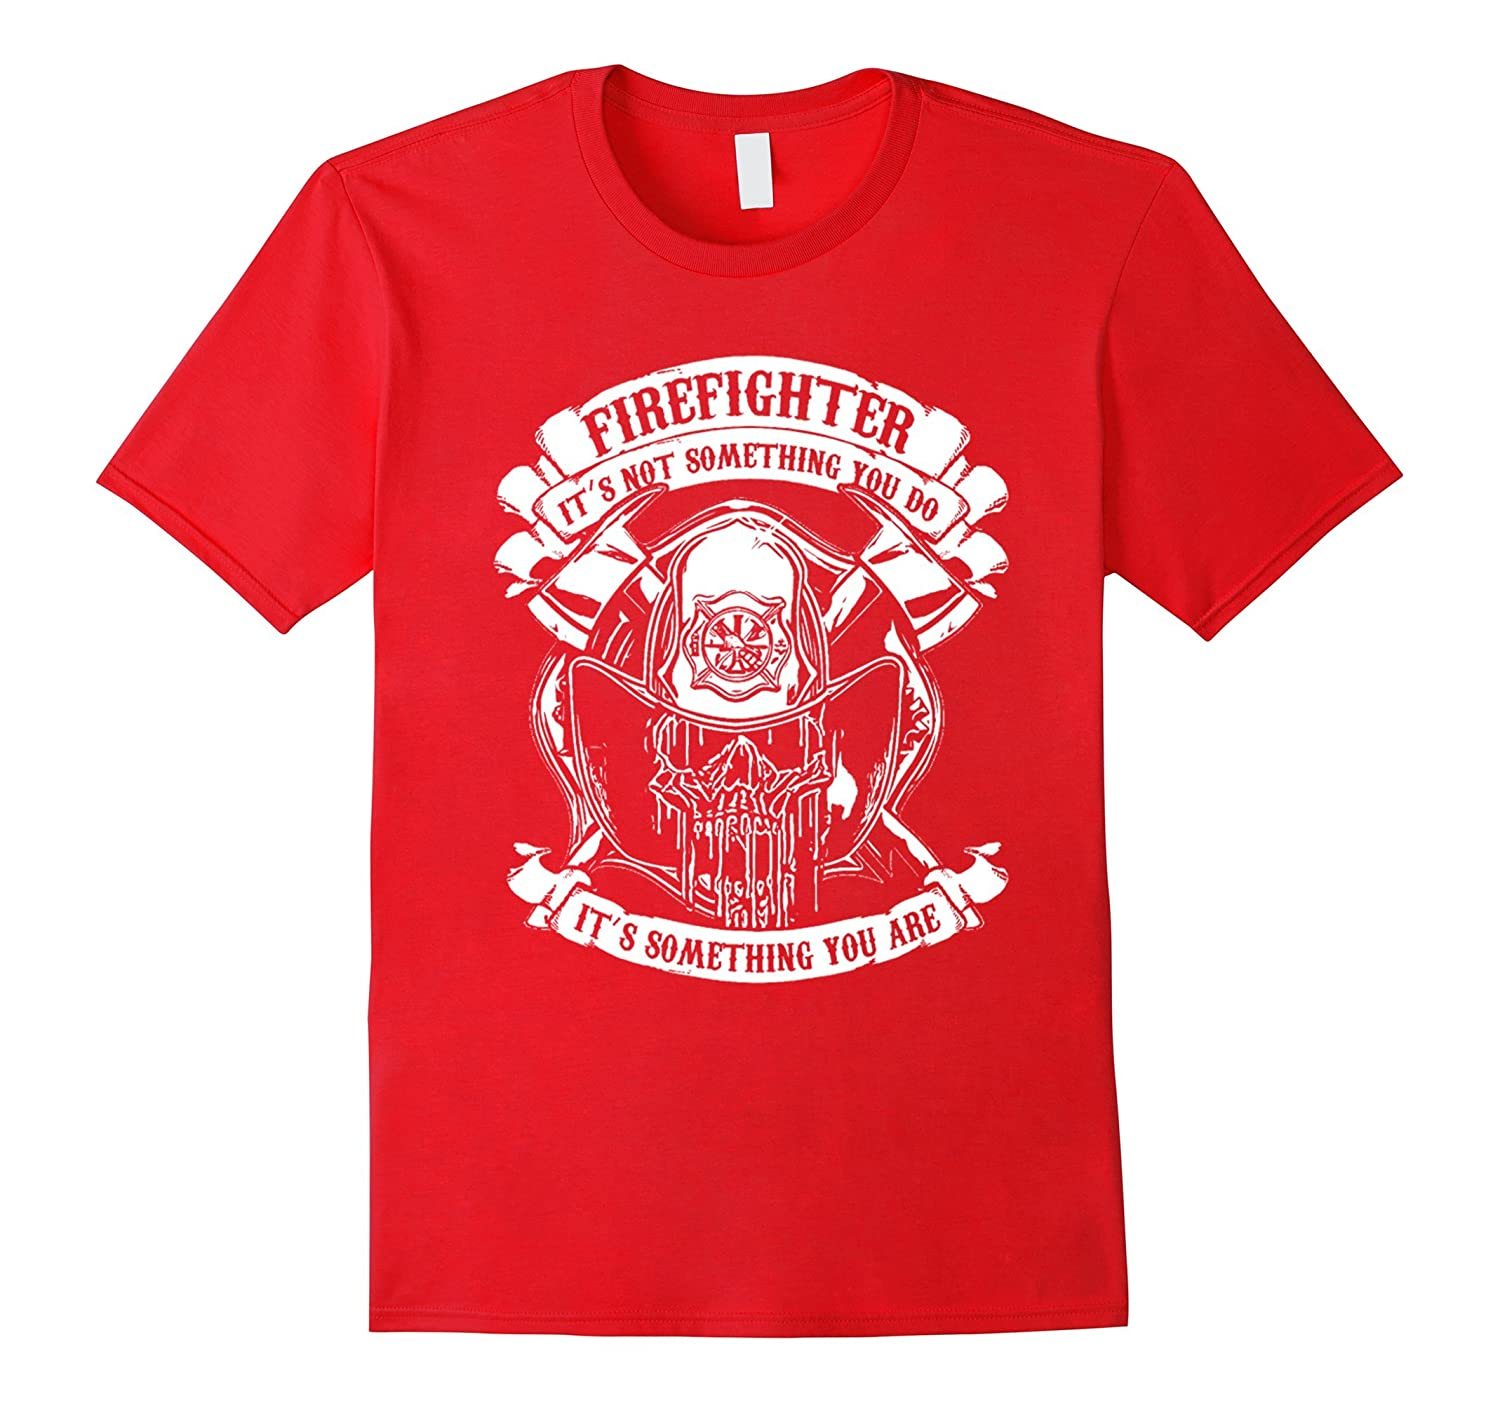 firefighter t shirt - firefighter it is not something you do-BN